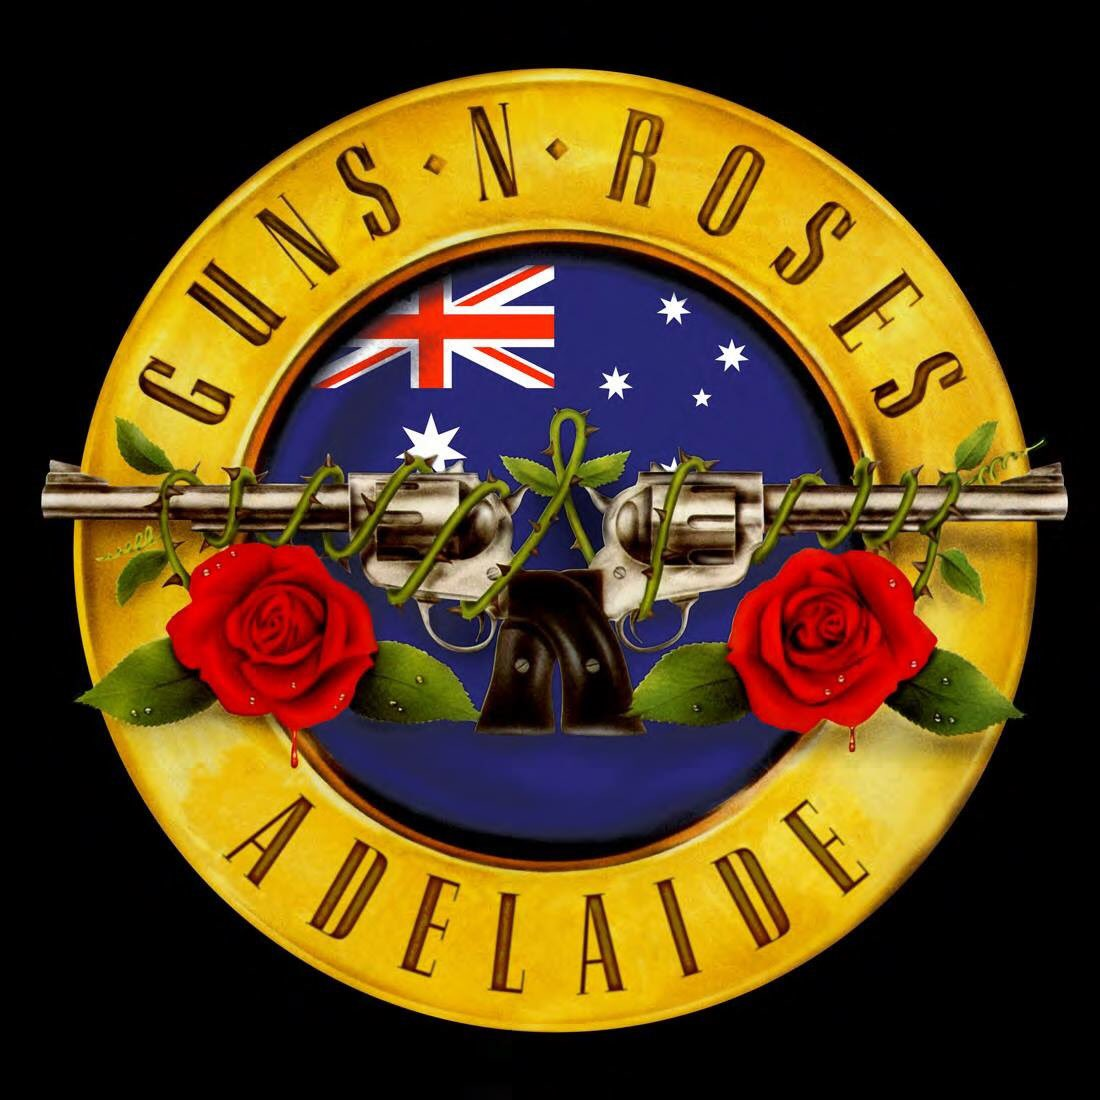 Adelaide up next... #GnFnR #NotInThisLifetime Tour 2017 https://t.co/R8emcxgCHw https://t.co/tTIsJoKY0i